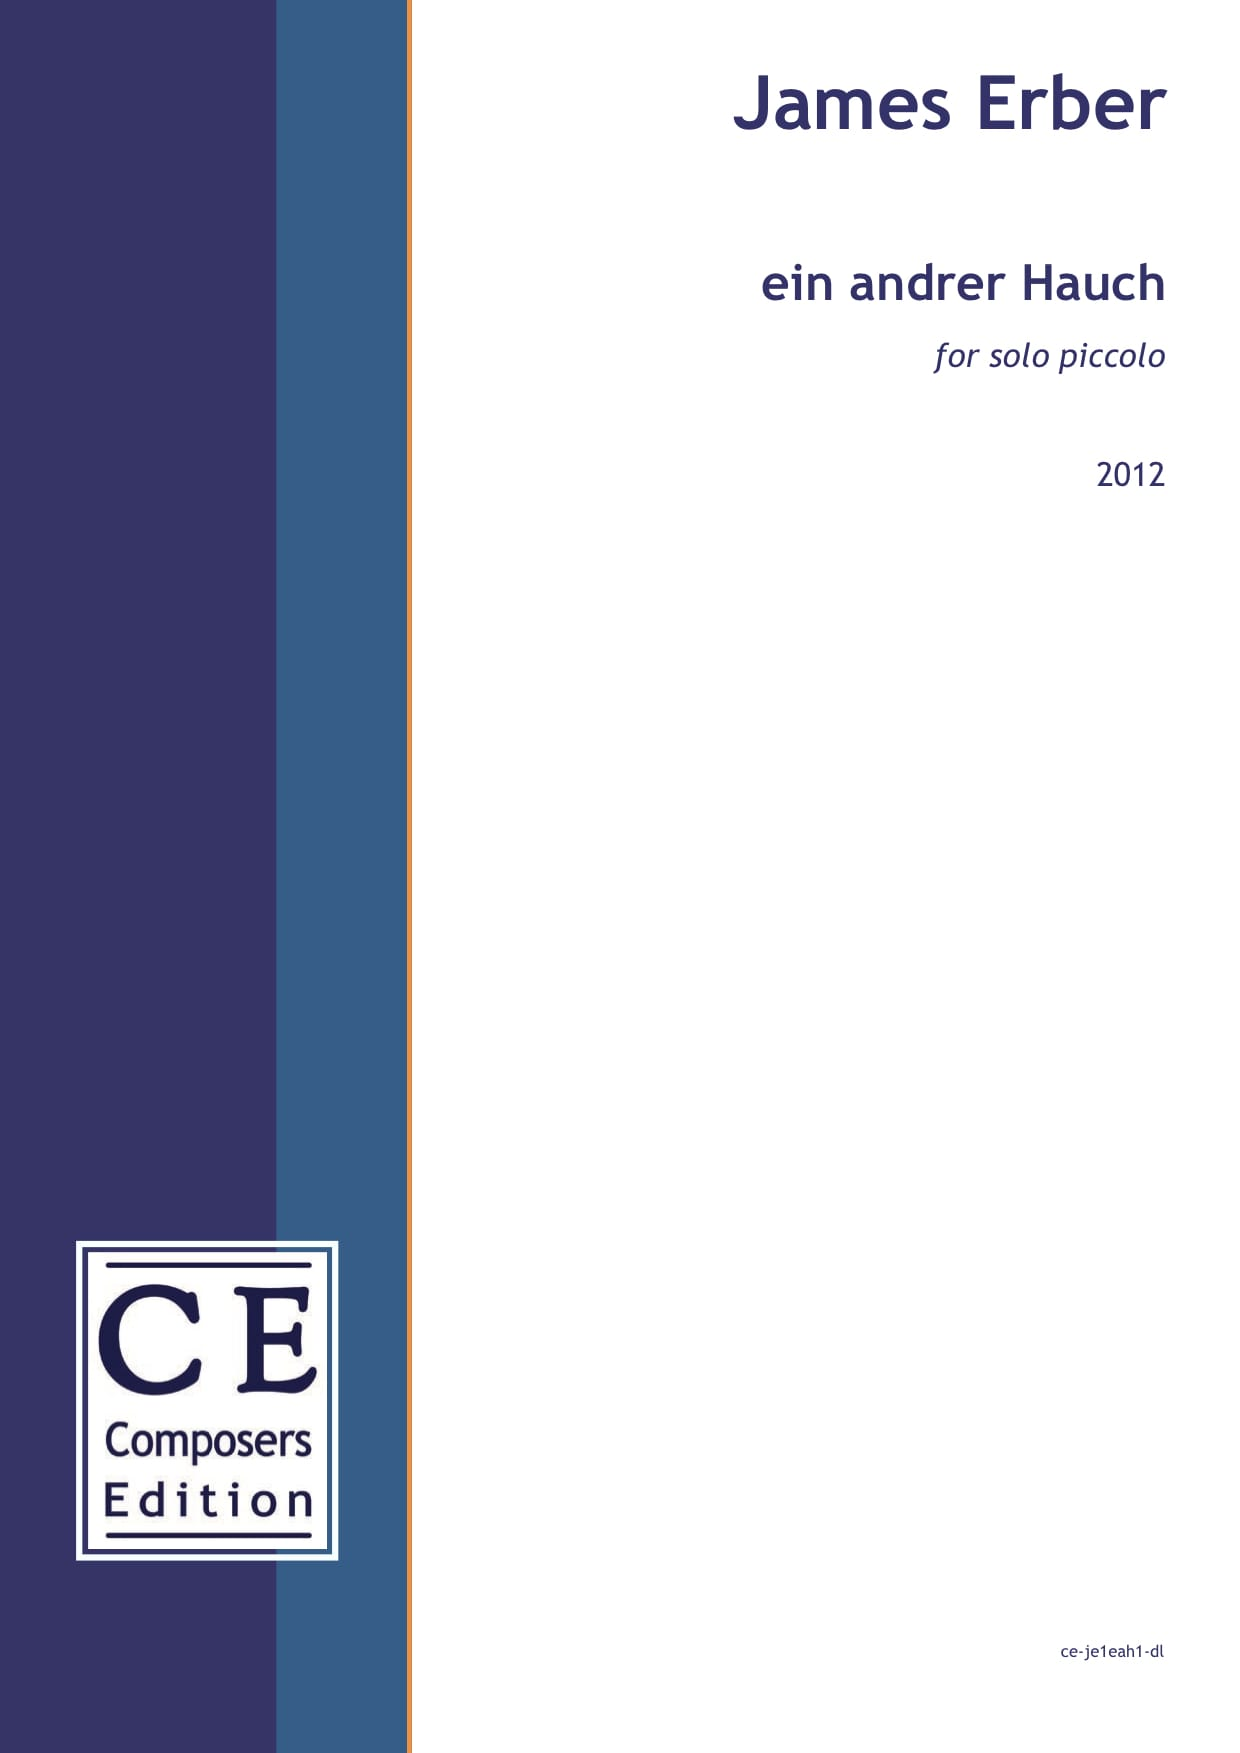 James Erber: ein andrer Hauch for solo piccolo